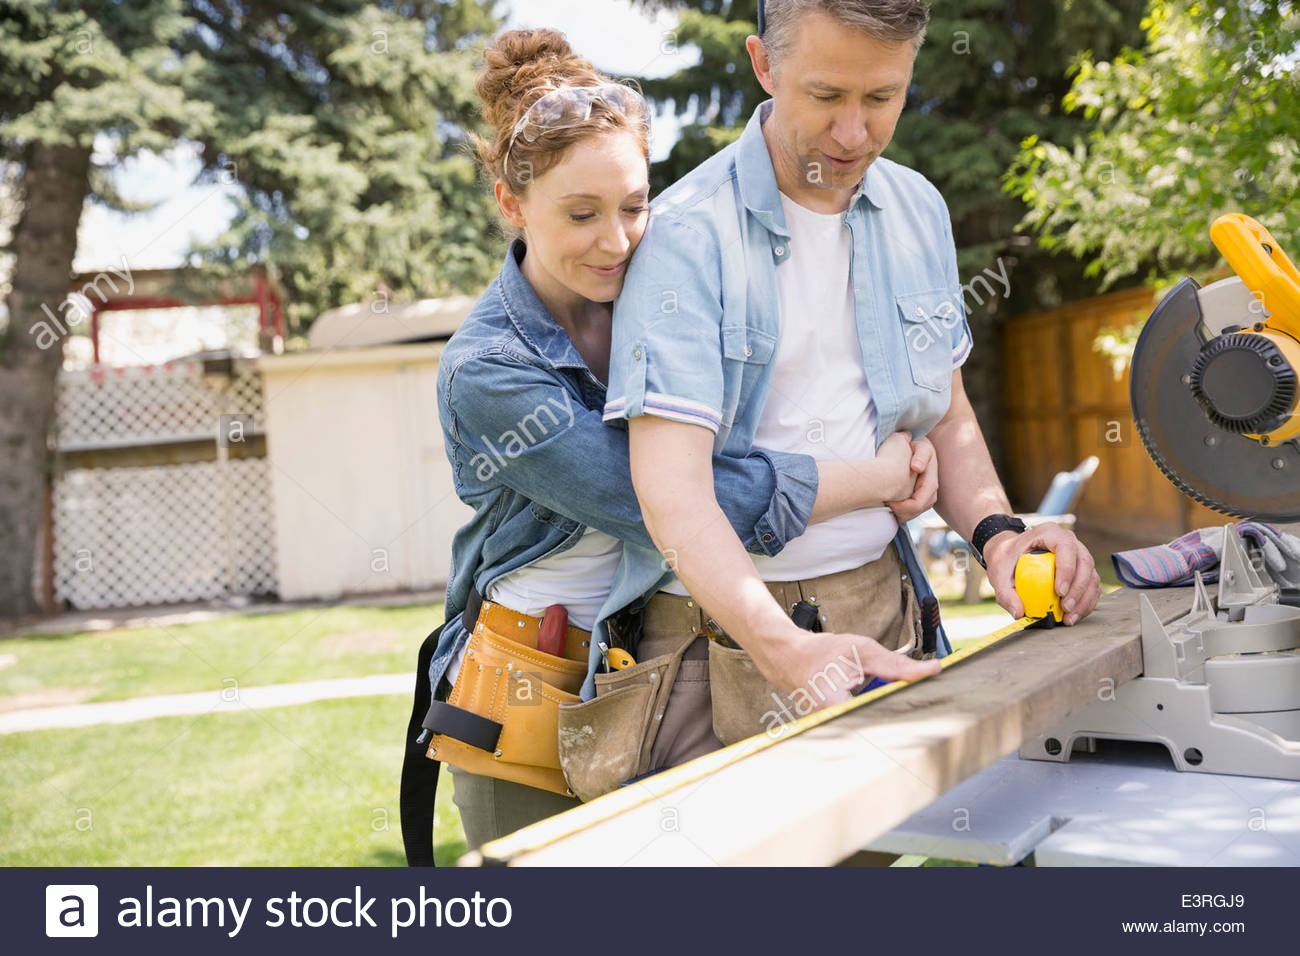 Man measuring wood plank at table saw - Stock Image